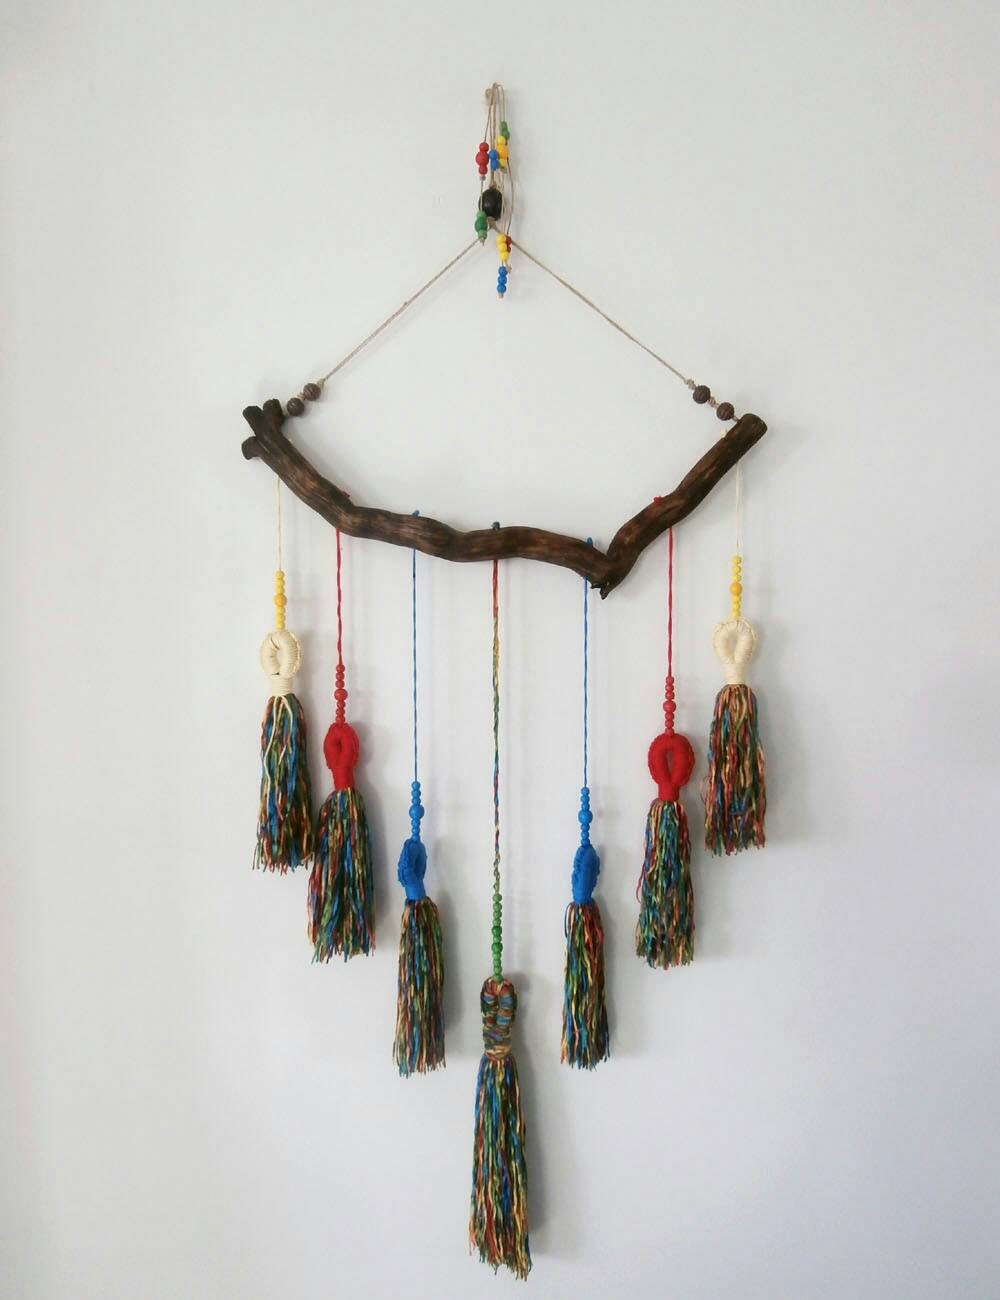 Wall Decorations Boho : Tassel wall decor boho hanging tassels on wood